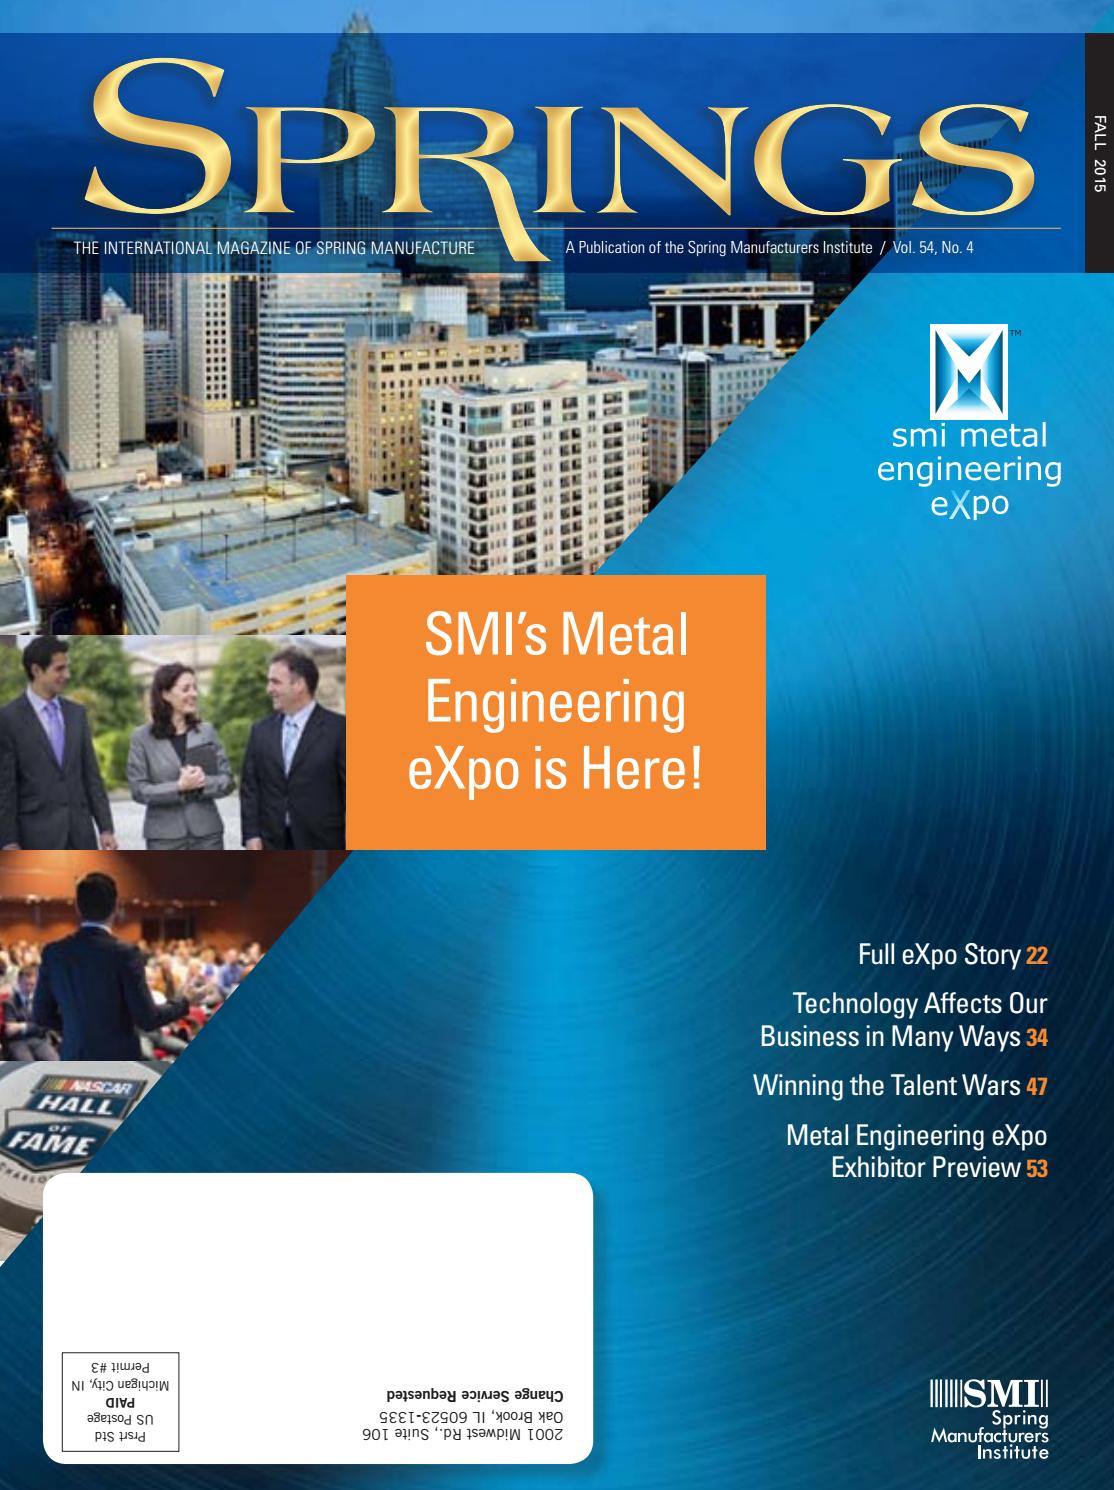 Springs fall 2015 vol 54 no4 by Spring Manufacturers Institute - issuu